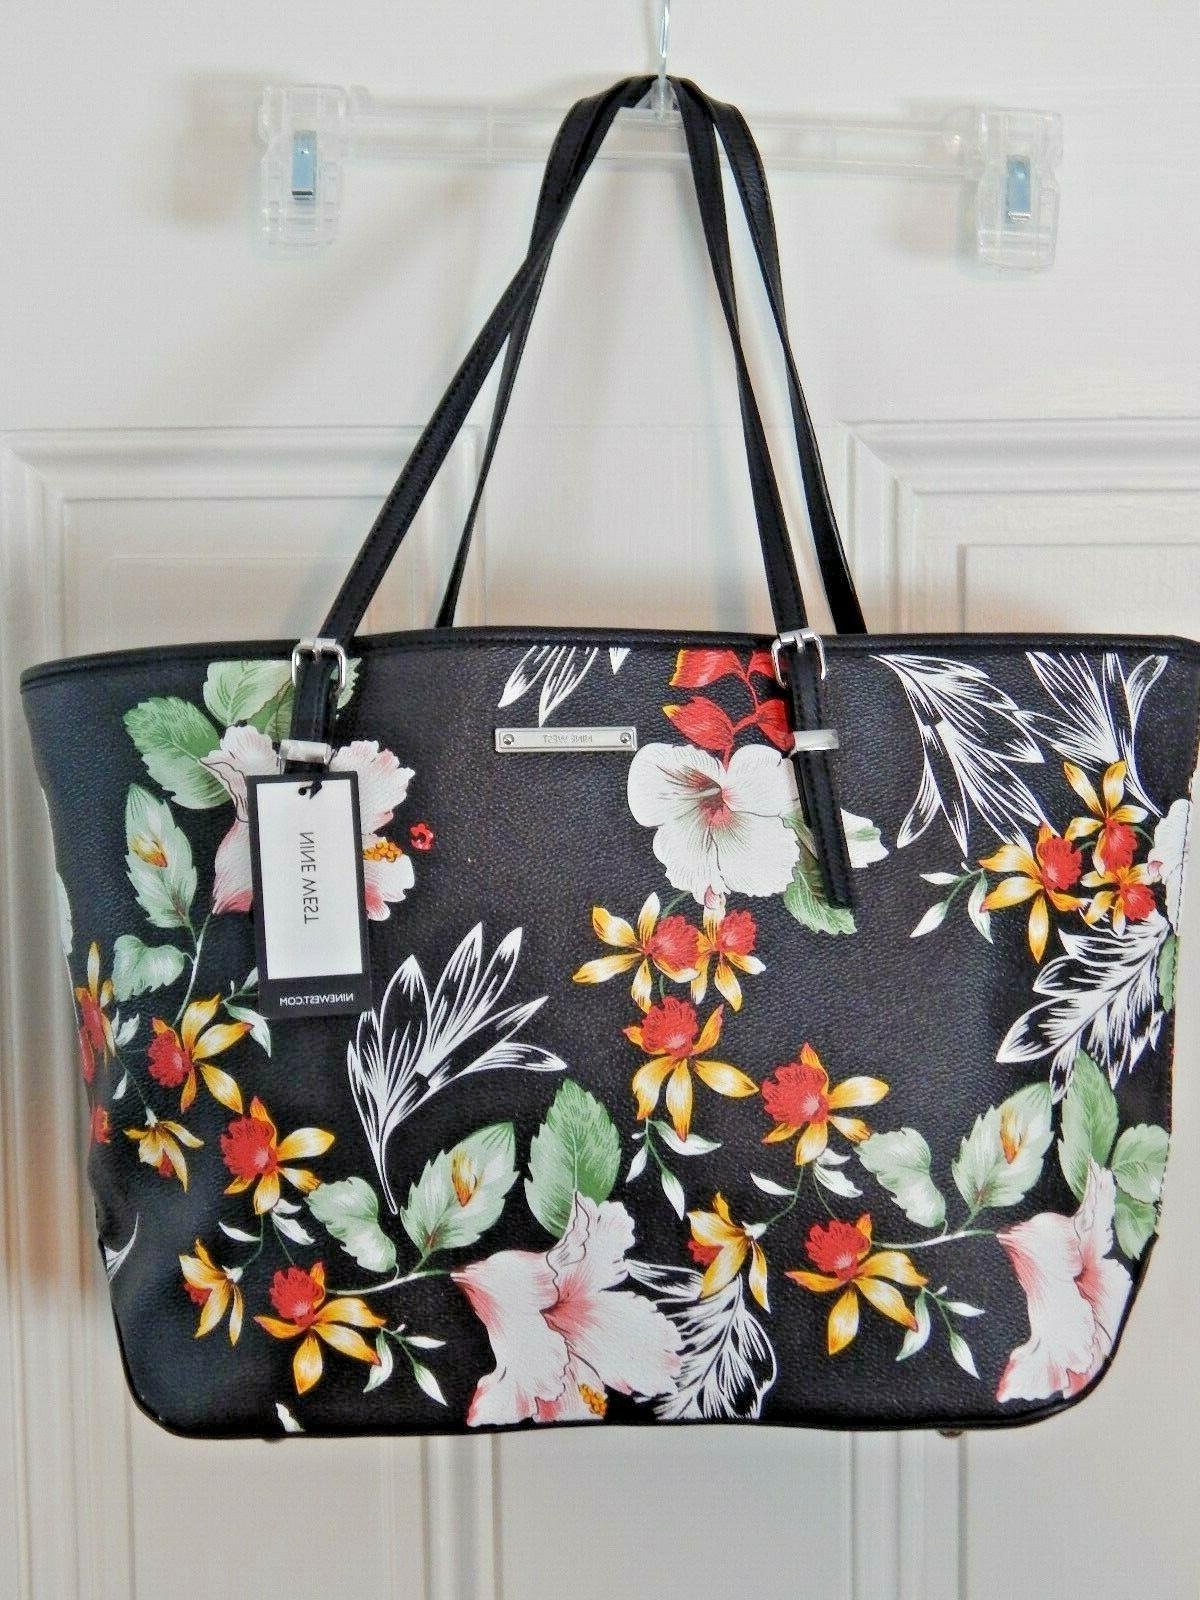 nwt it girl large black floral tote